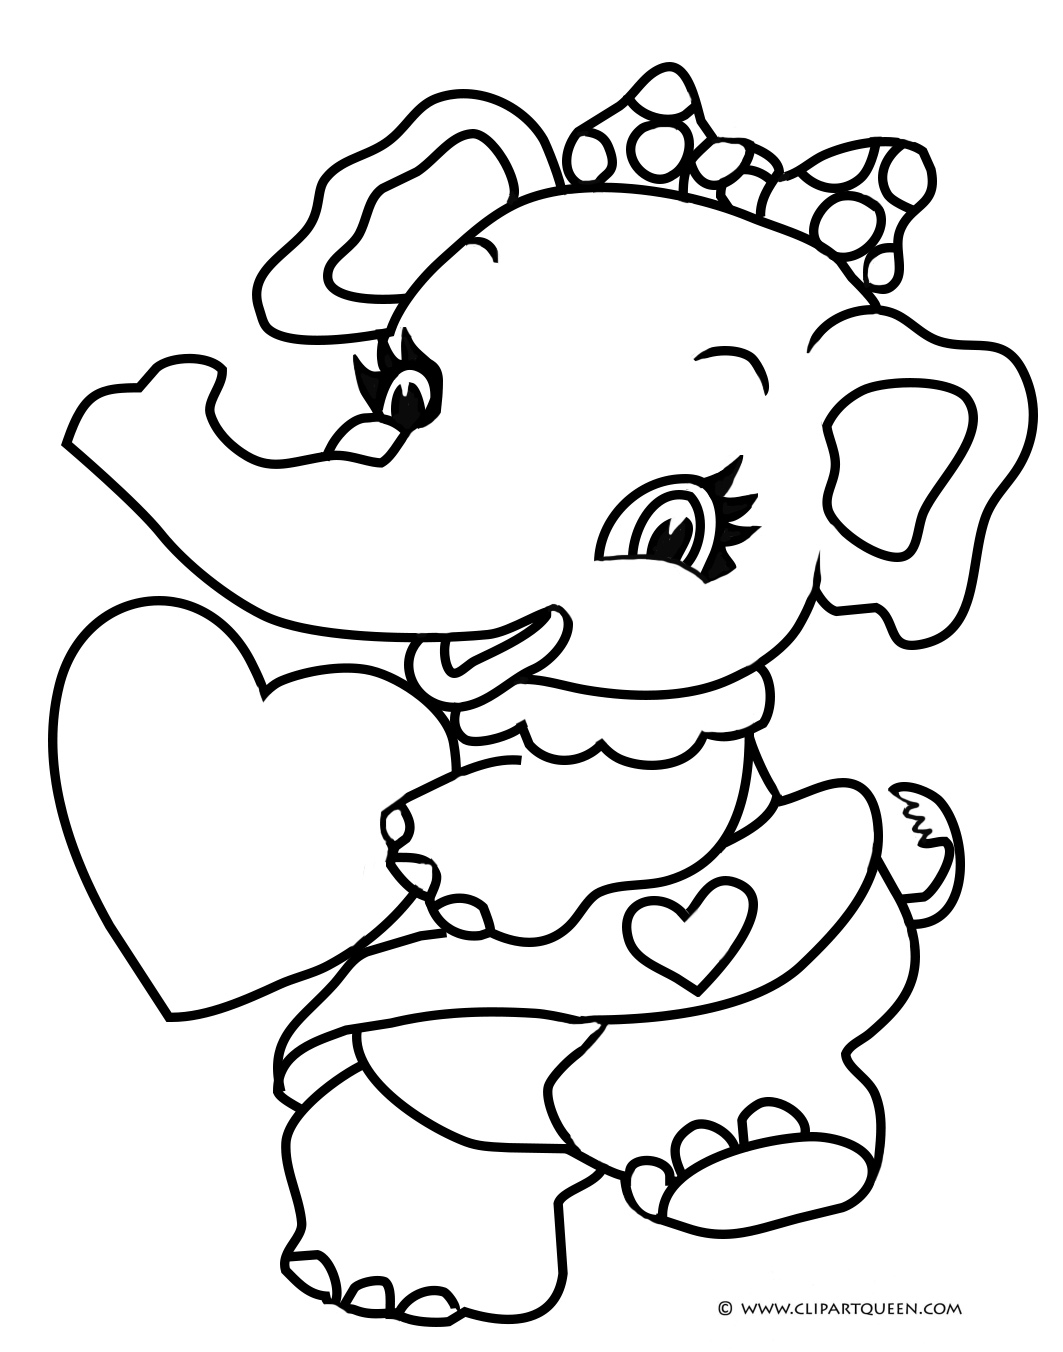 Valentines Day Coloring Pages To Print